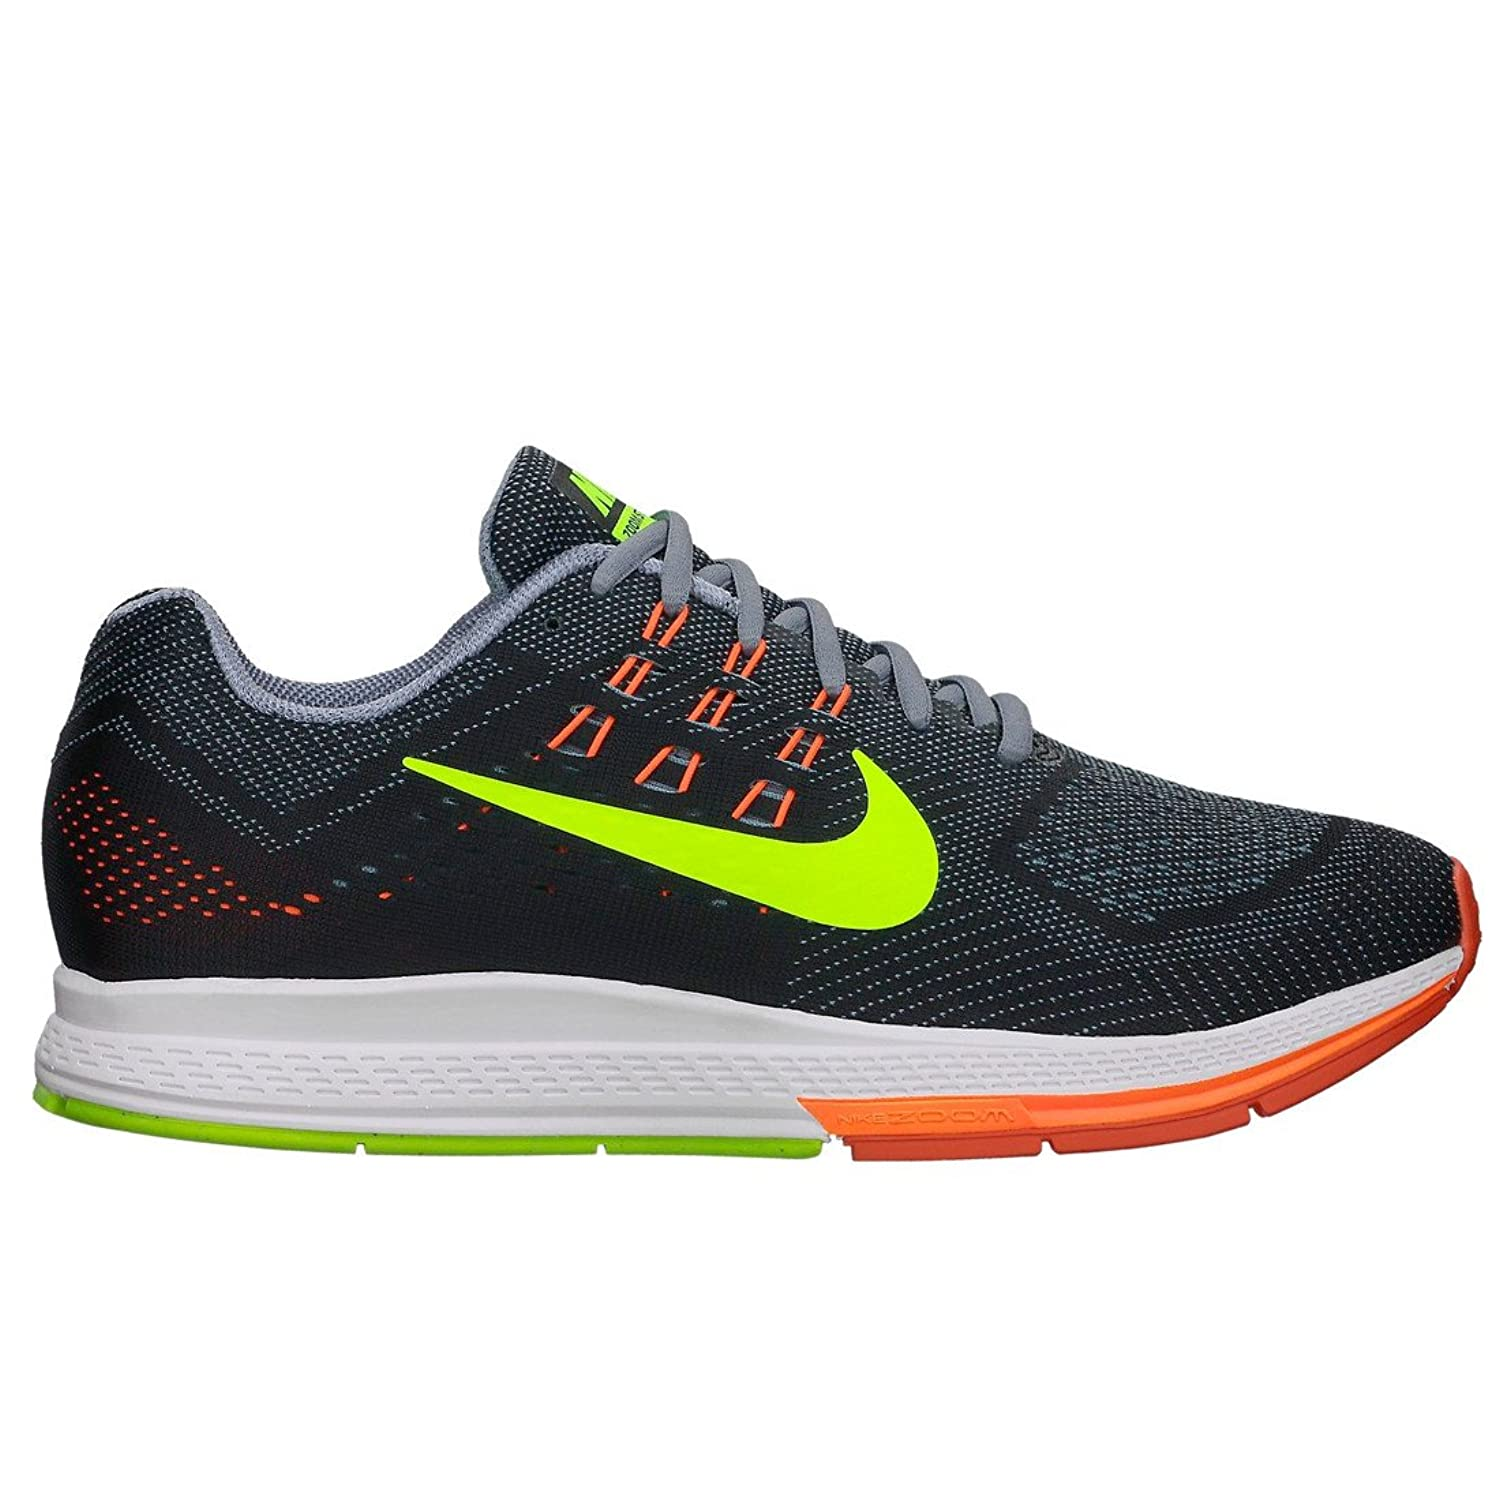 Images for Nike Men`s Zoom Air Structure 18 Running Shoes - Extra Wide (4E)  Size 11